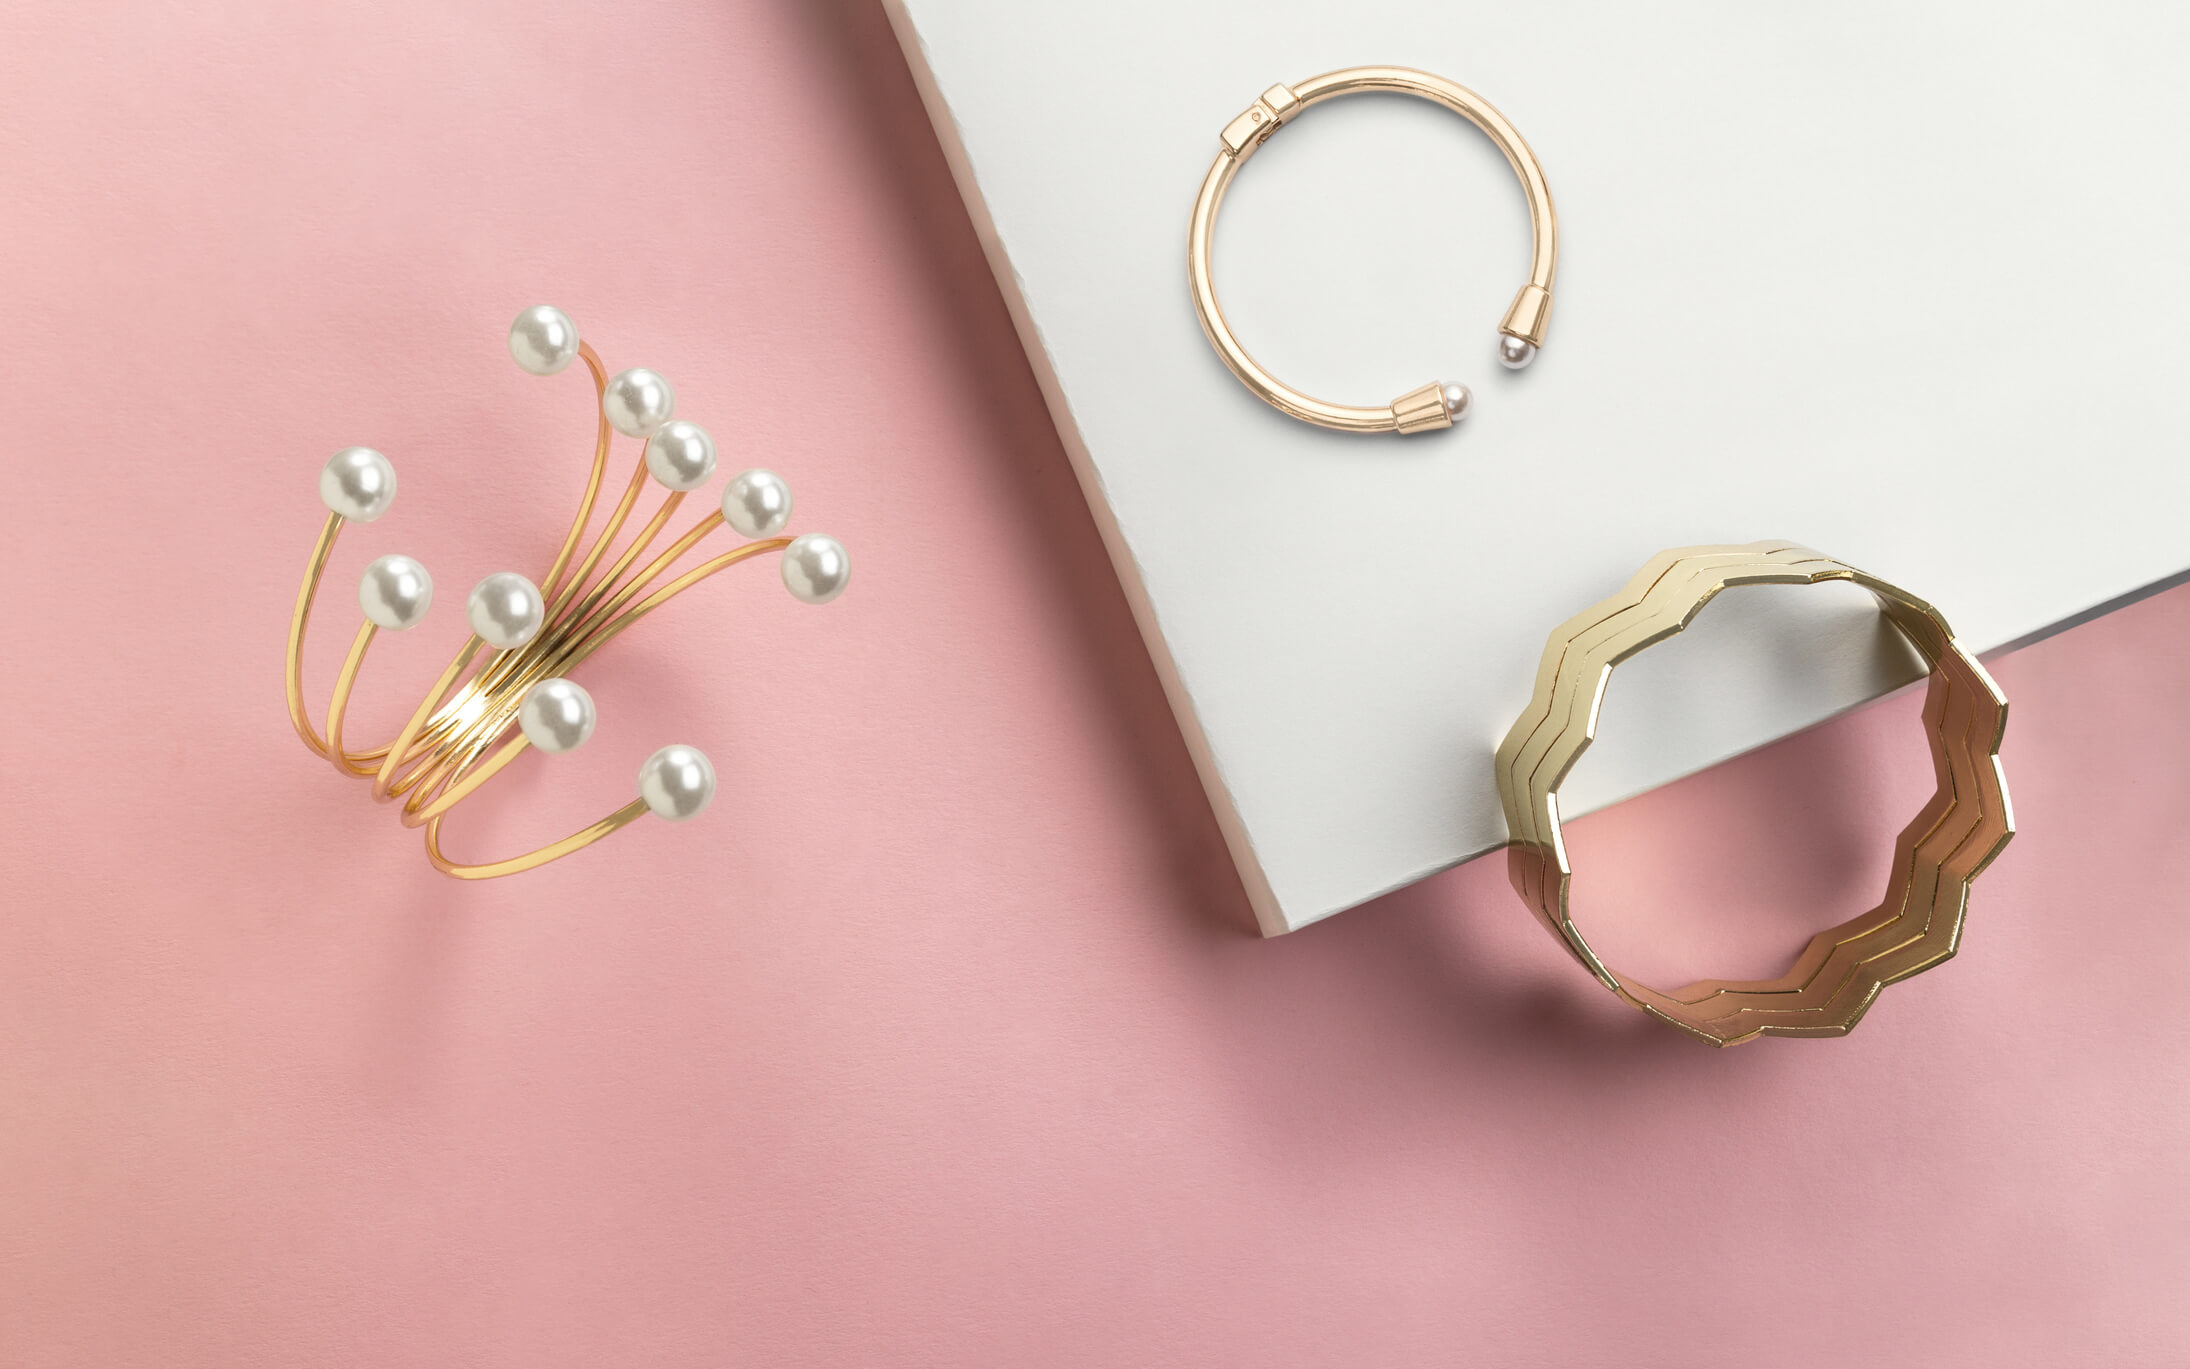 Gold jewelry against pink and white background